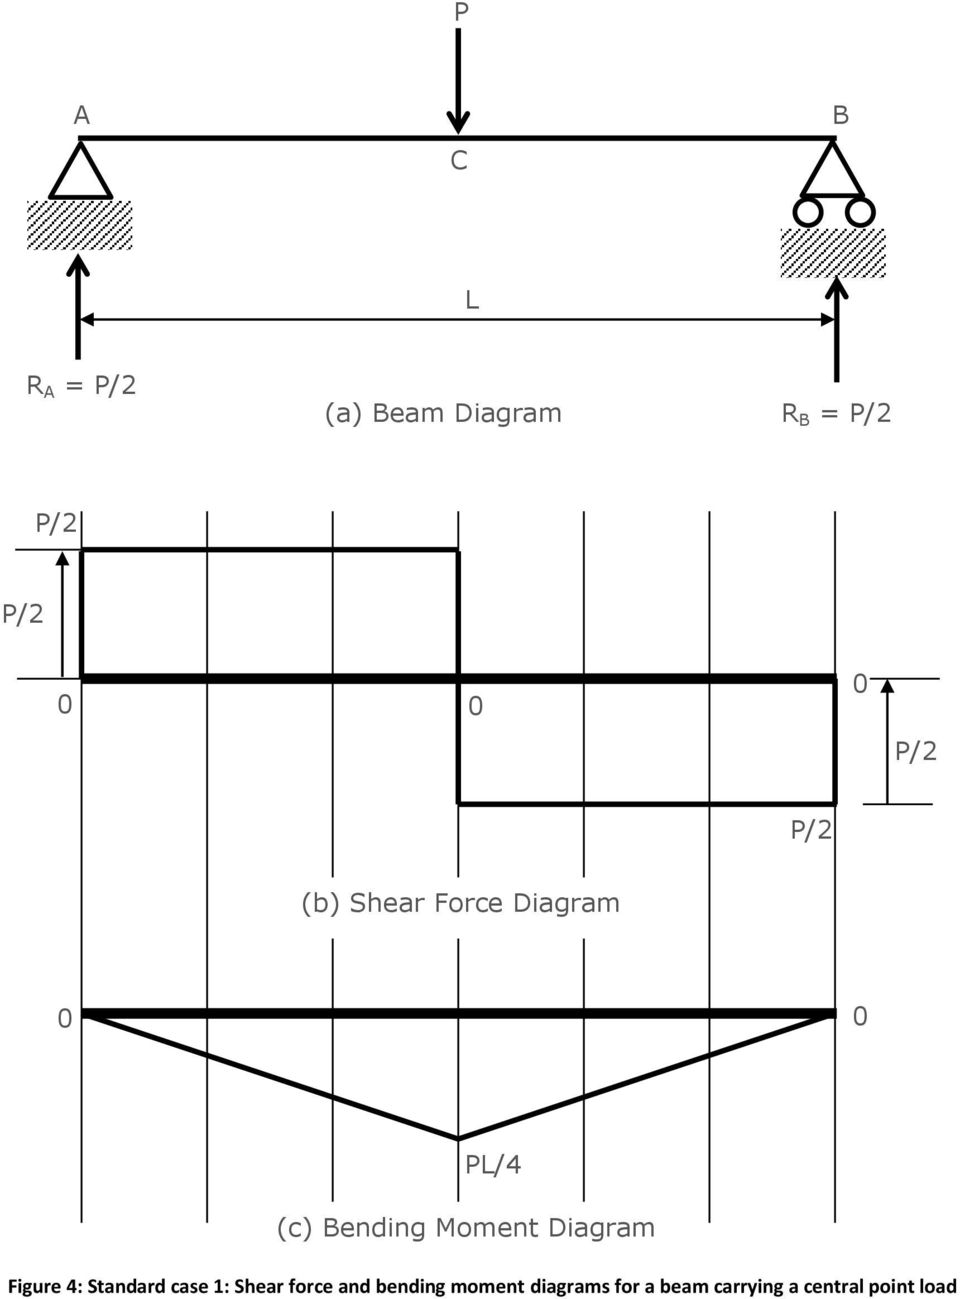 Chapter 8 Shear Force And Bending Moment Diagrams For Uniformly Draw The Overhanging Beam Diagram Figure 4 Standard Case 1